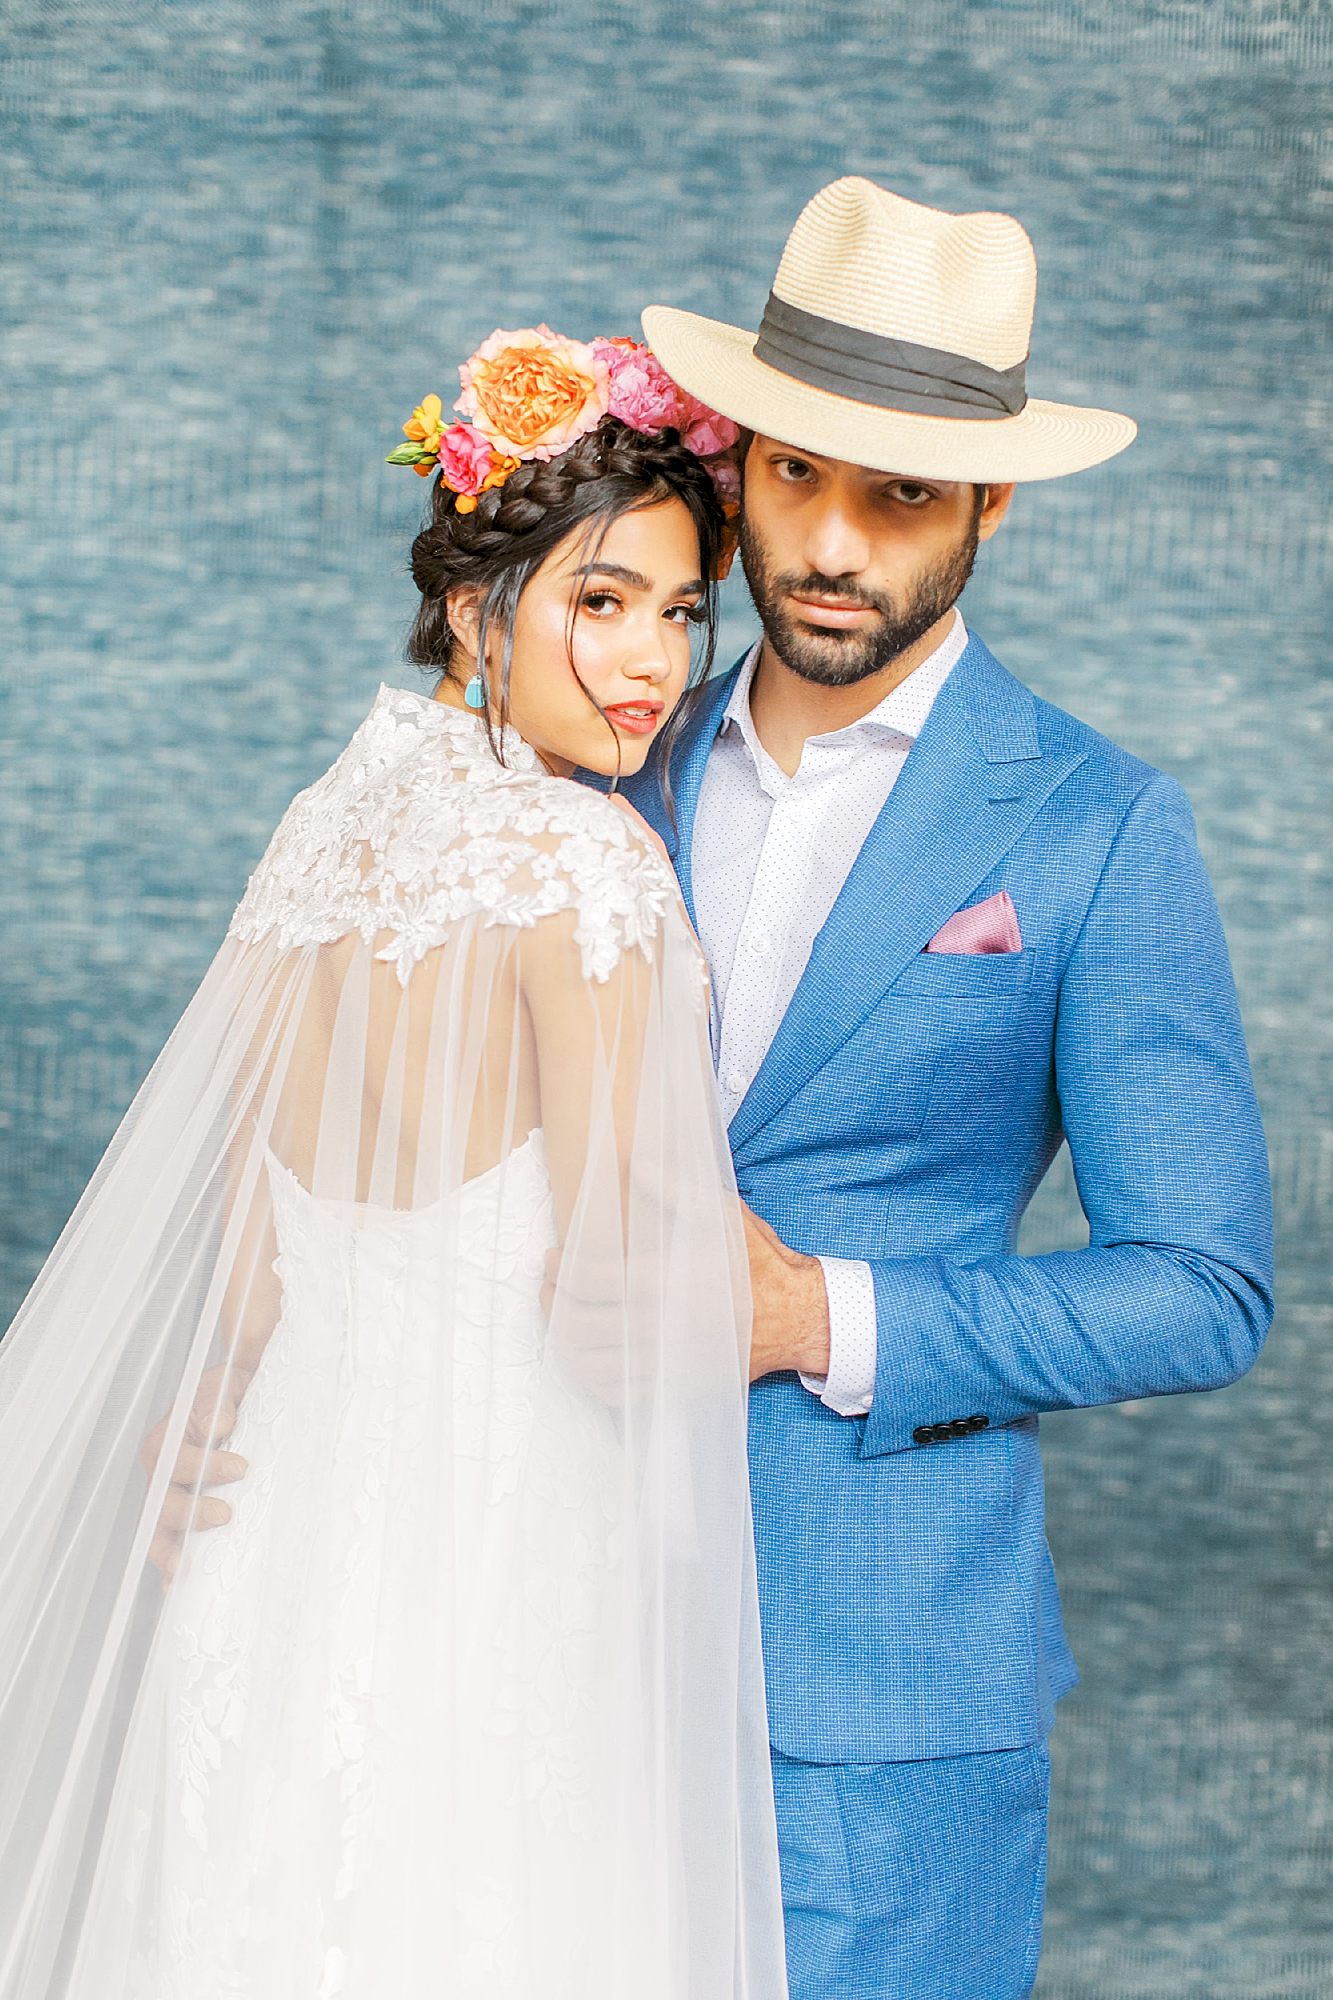 Vibrant and Colorful Frida Kahlo Inspired Wedding Photography by Magdalena Studios 0045